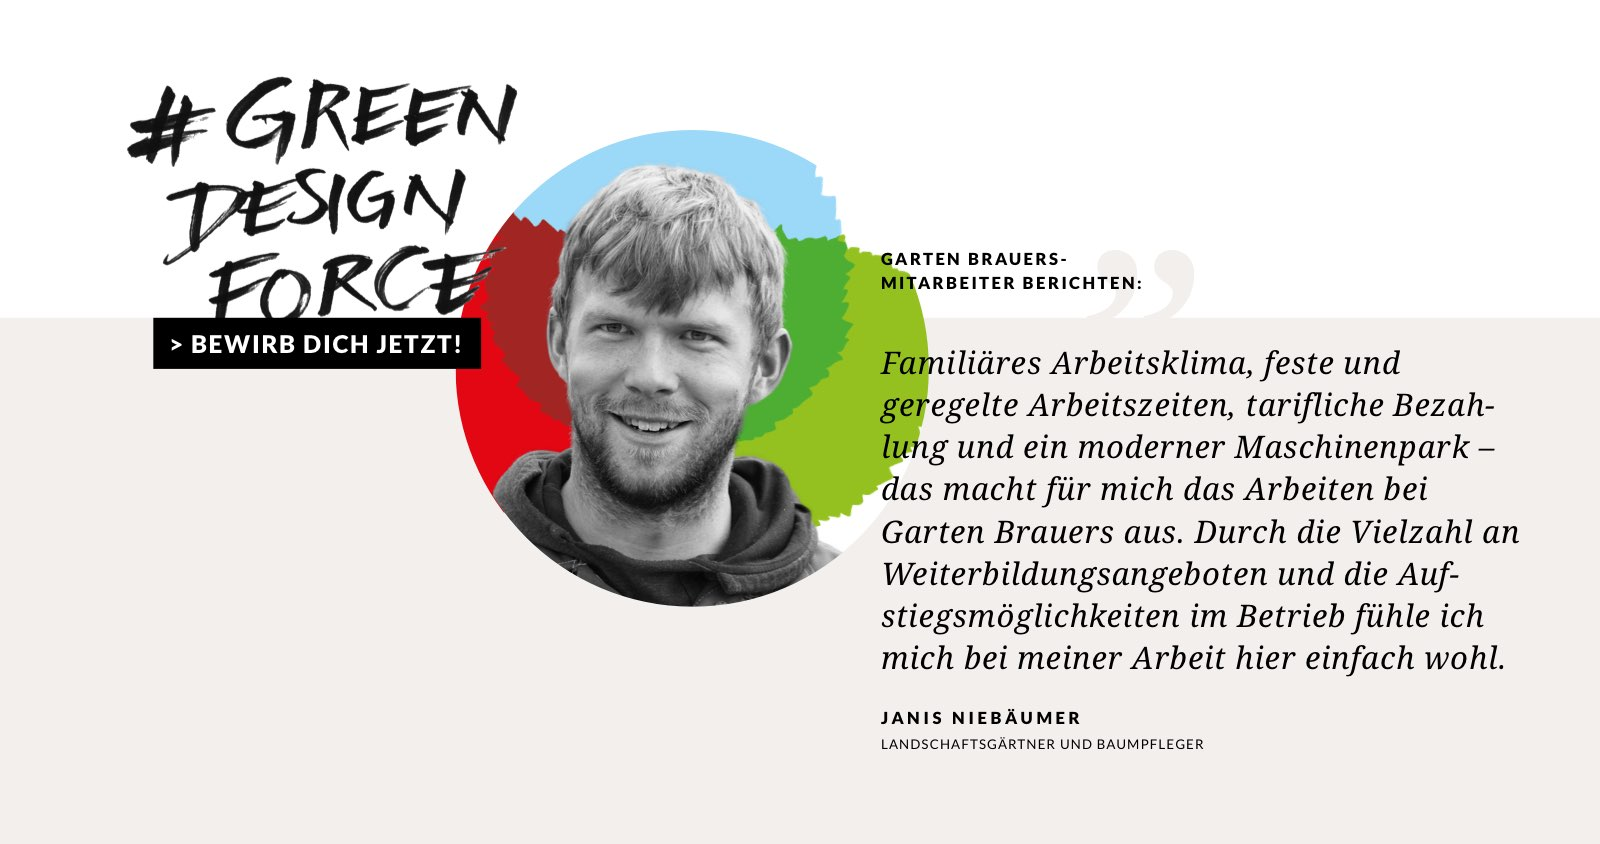 #GreenDesignForce